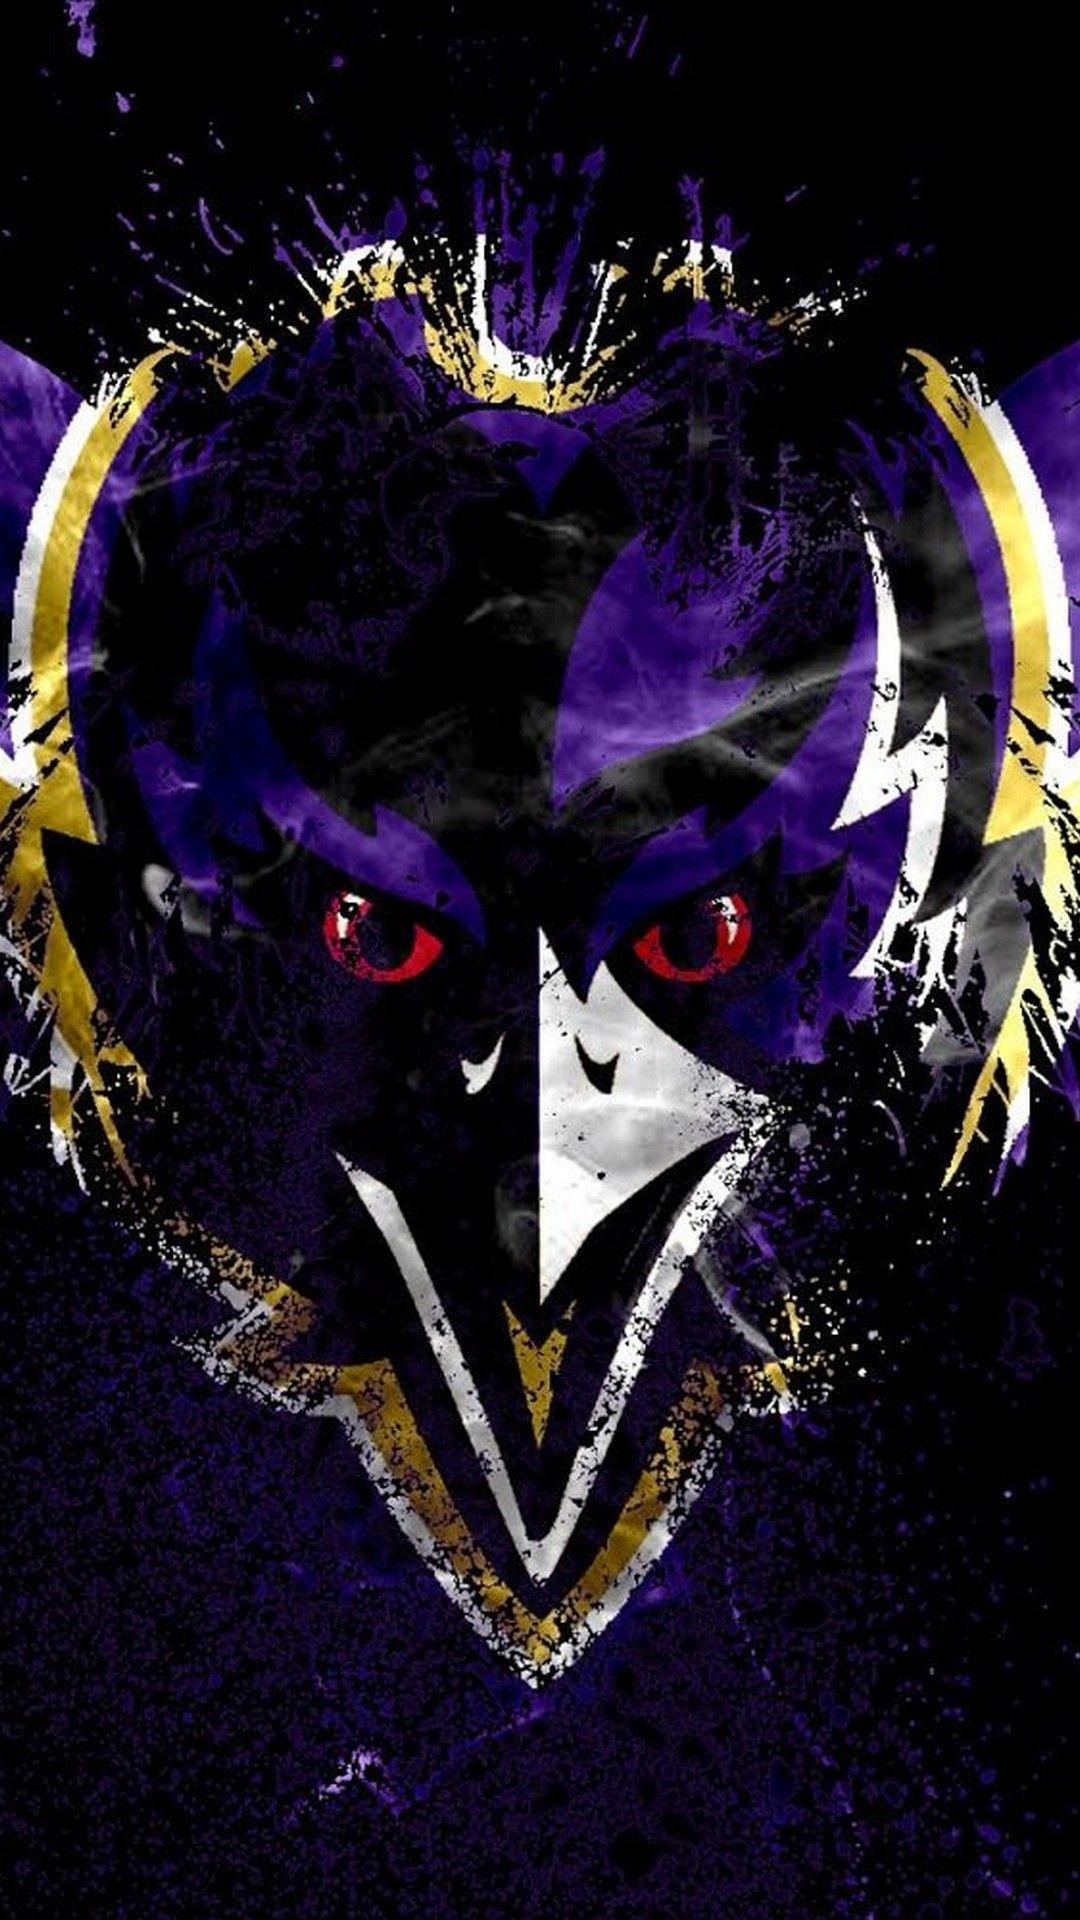 NFL Wallpapers in 2020 Baltimore ravens, Computer screen